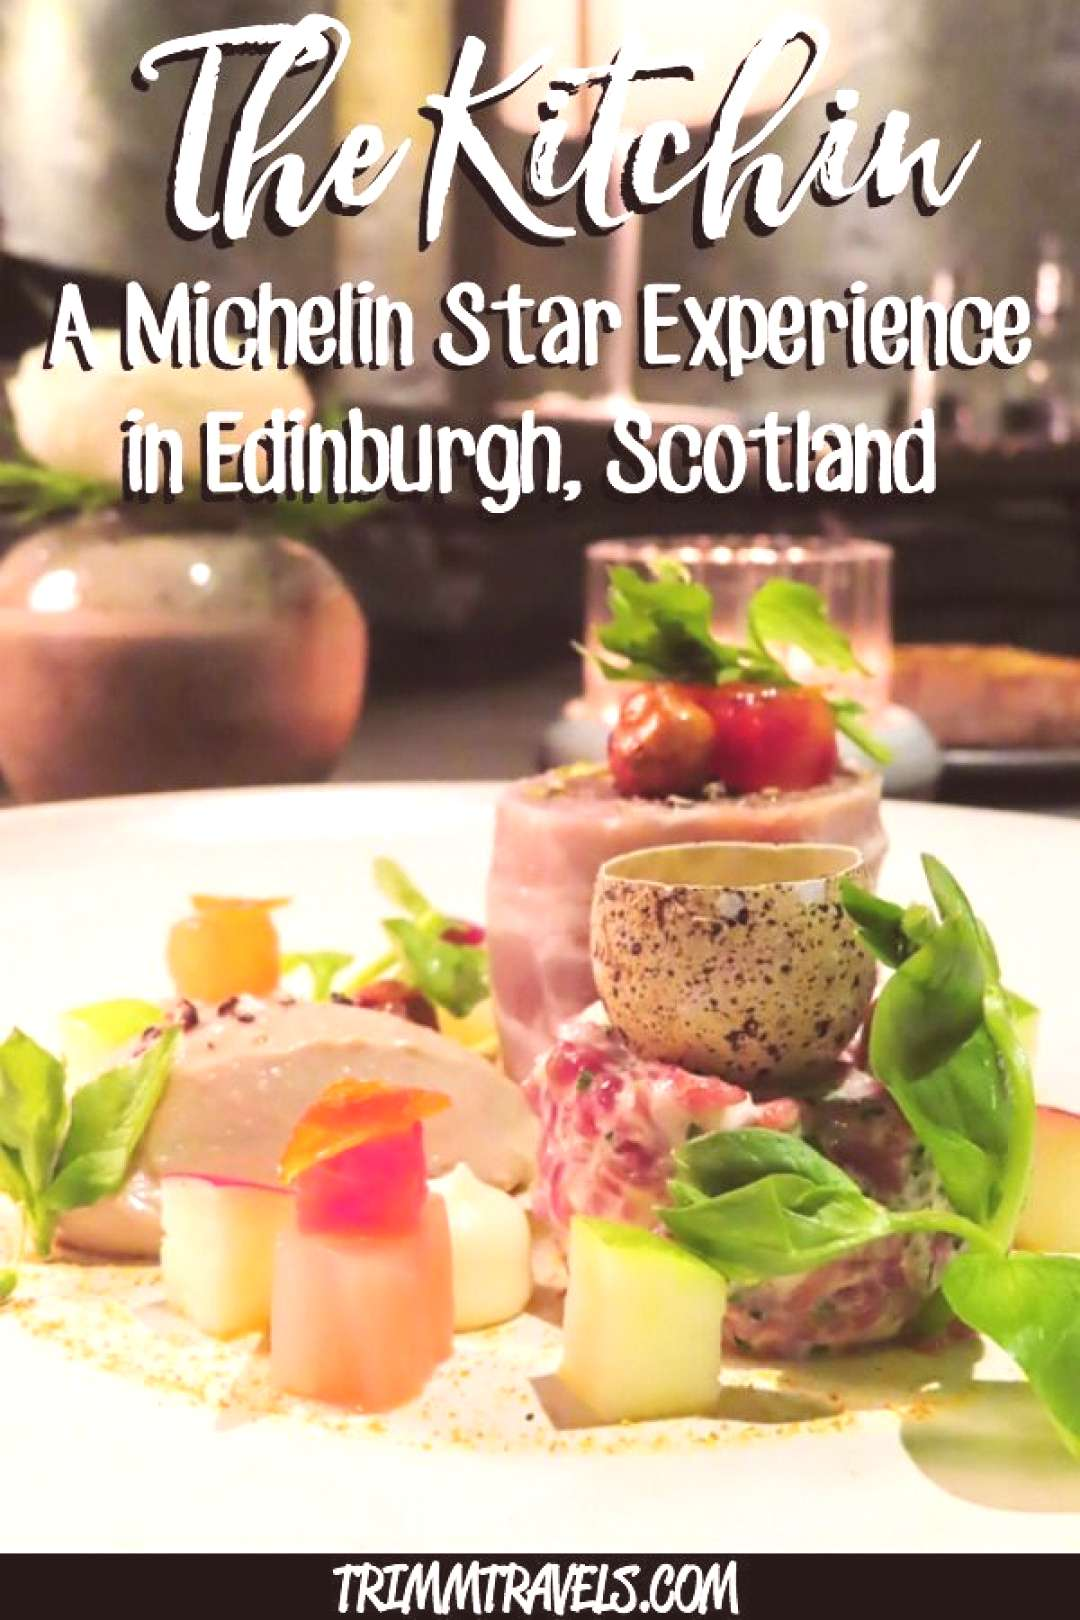 The Kitchin Edinburgh, Scotland A Michelin Star Experience • Trimm Travels Fine dining at its be